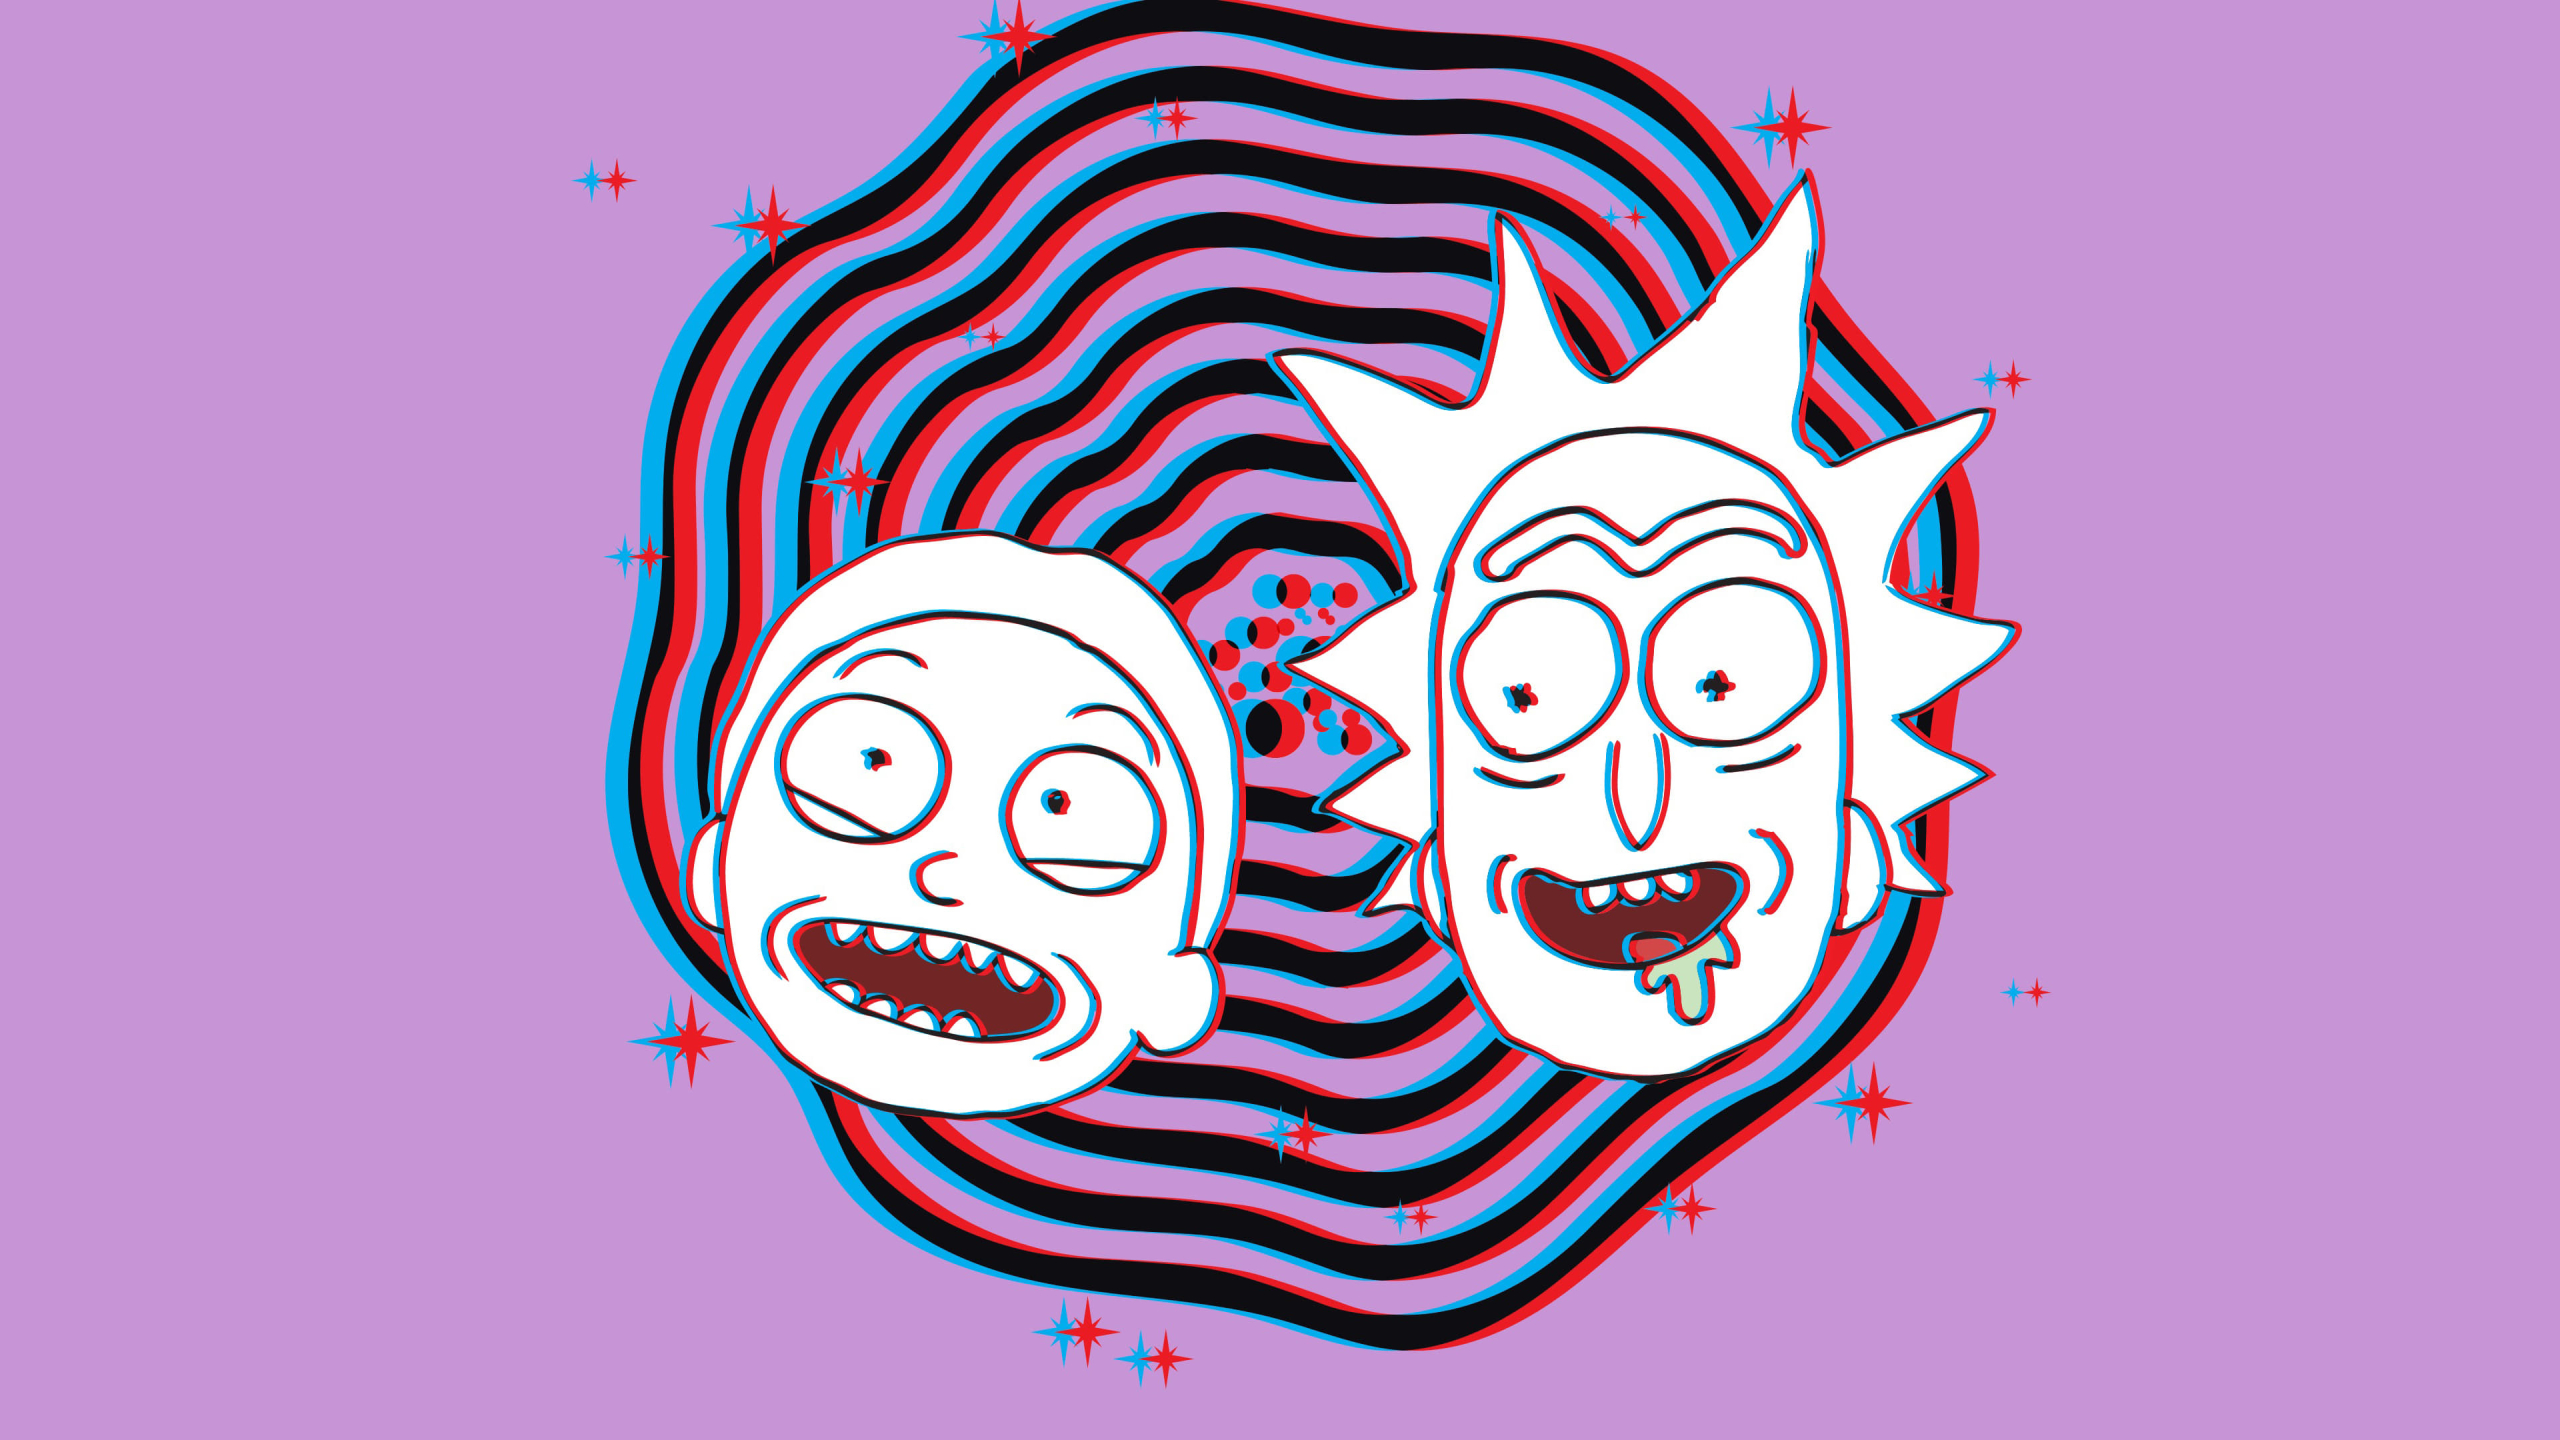 2560x1440 Rick and Morty 2020 1440P Resolution Wallpaper ...